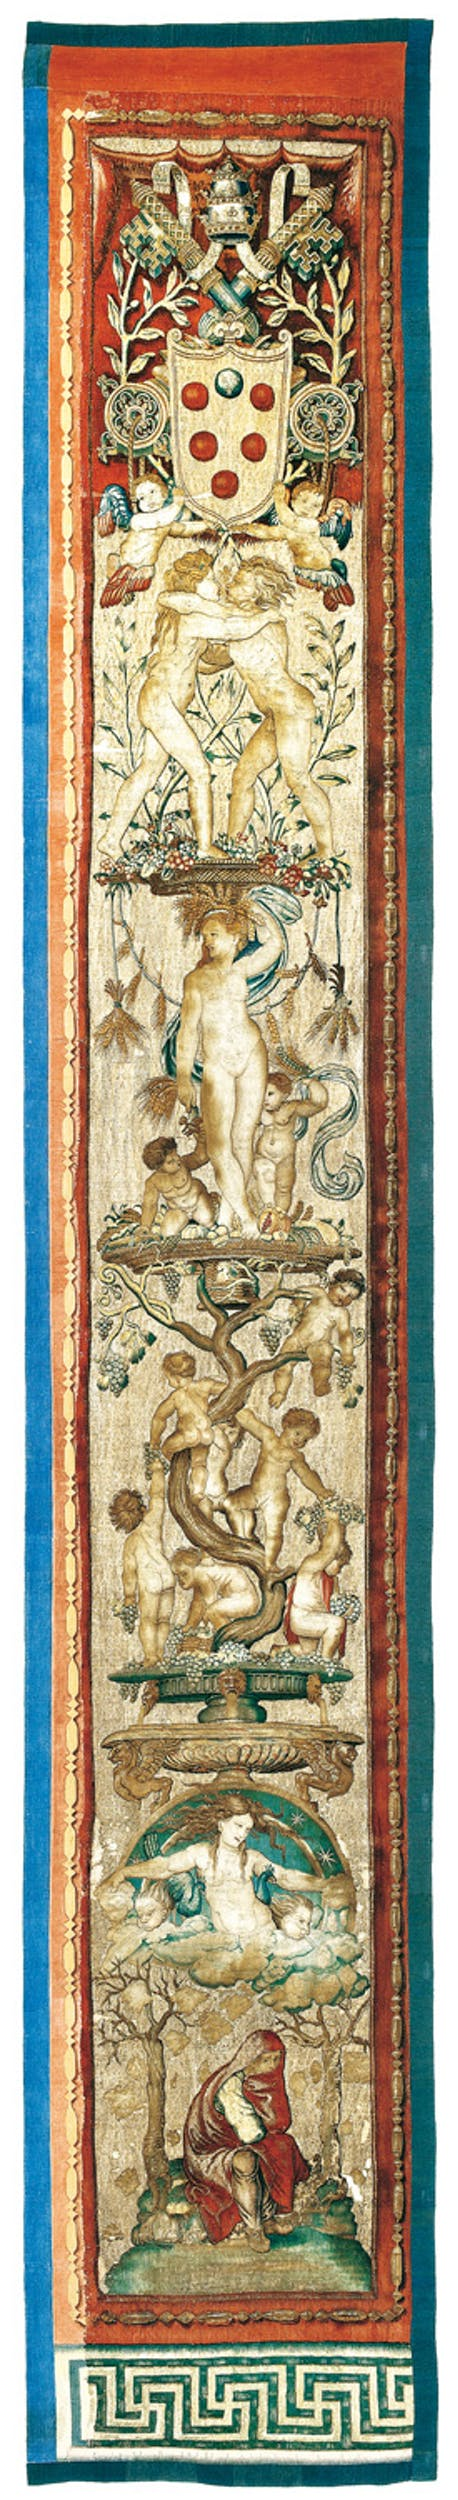 Bottega di Pieter van Aelst (Pieter I van Edingen o Enghien, 1450 ca.-1533), su disegno e cartone di Raffaello e bottega Bordura con le Stagioni per la serie degli Atti degli Apostoli 1515-1521 lana, seta, argento dorato Musei Vaticani, Roma | Workshop of Pieter van Aelst, known as Pieter van Edingen or Enghien (c. 1450 – 1533), after a drawing and cartoon by Raphael and his workshop Around the border, the Seasons for the Acts of the Apostles series 1515-21 wool, silk, silver gilt  Vatican Museum, Rome